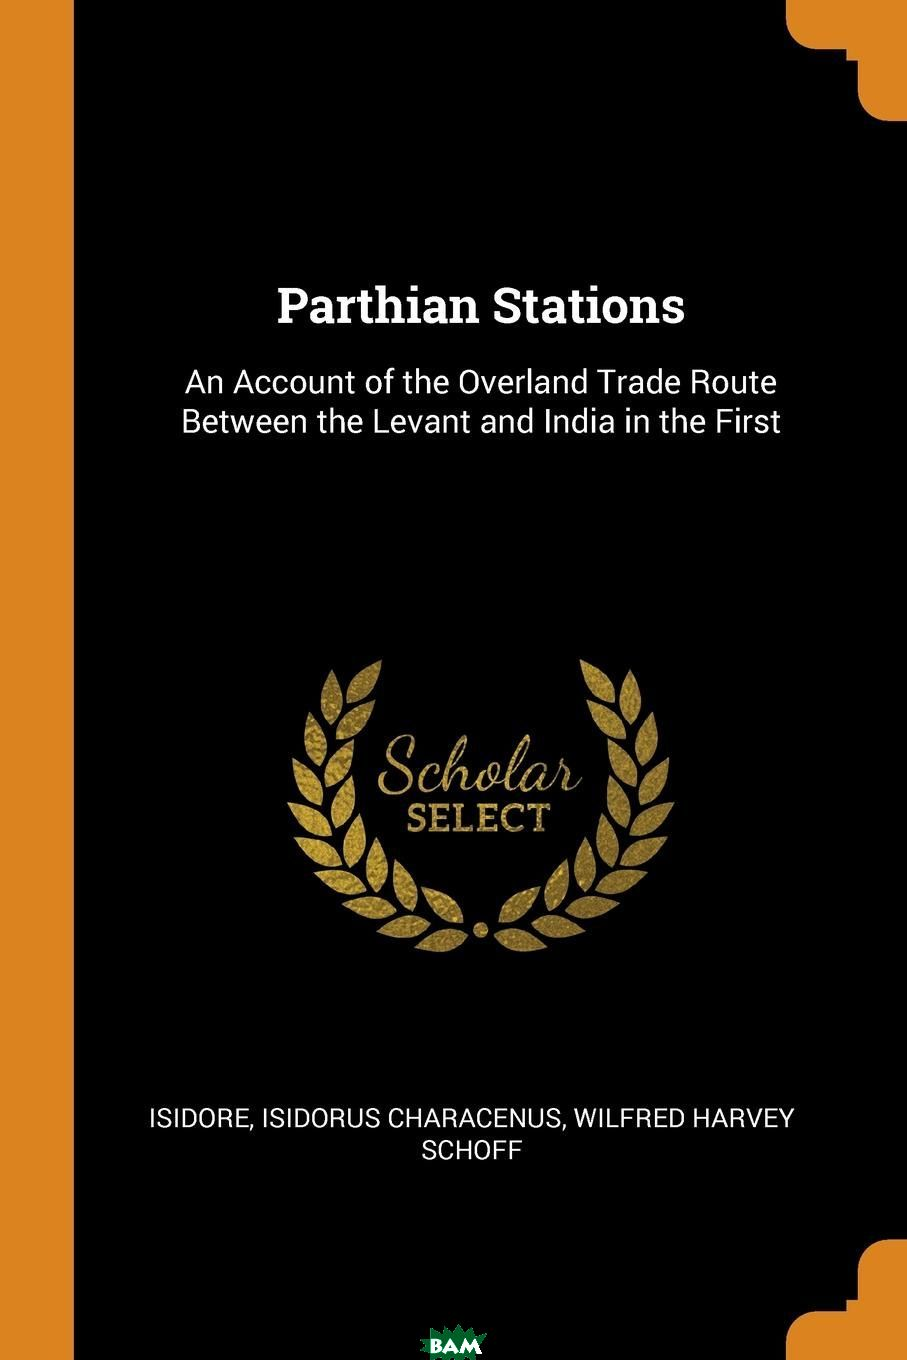 Купить Parthian Stations. An Account of the Overland Trade Route Between the Levant and India in the First, Wilfred Harvey Scho Isidorus Characenus, 9780341682875